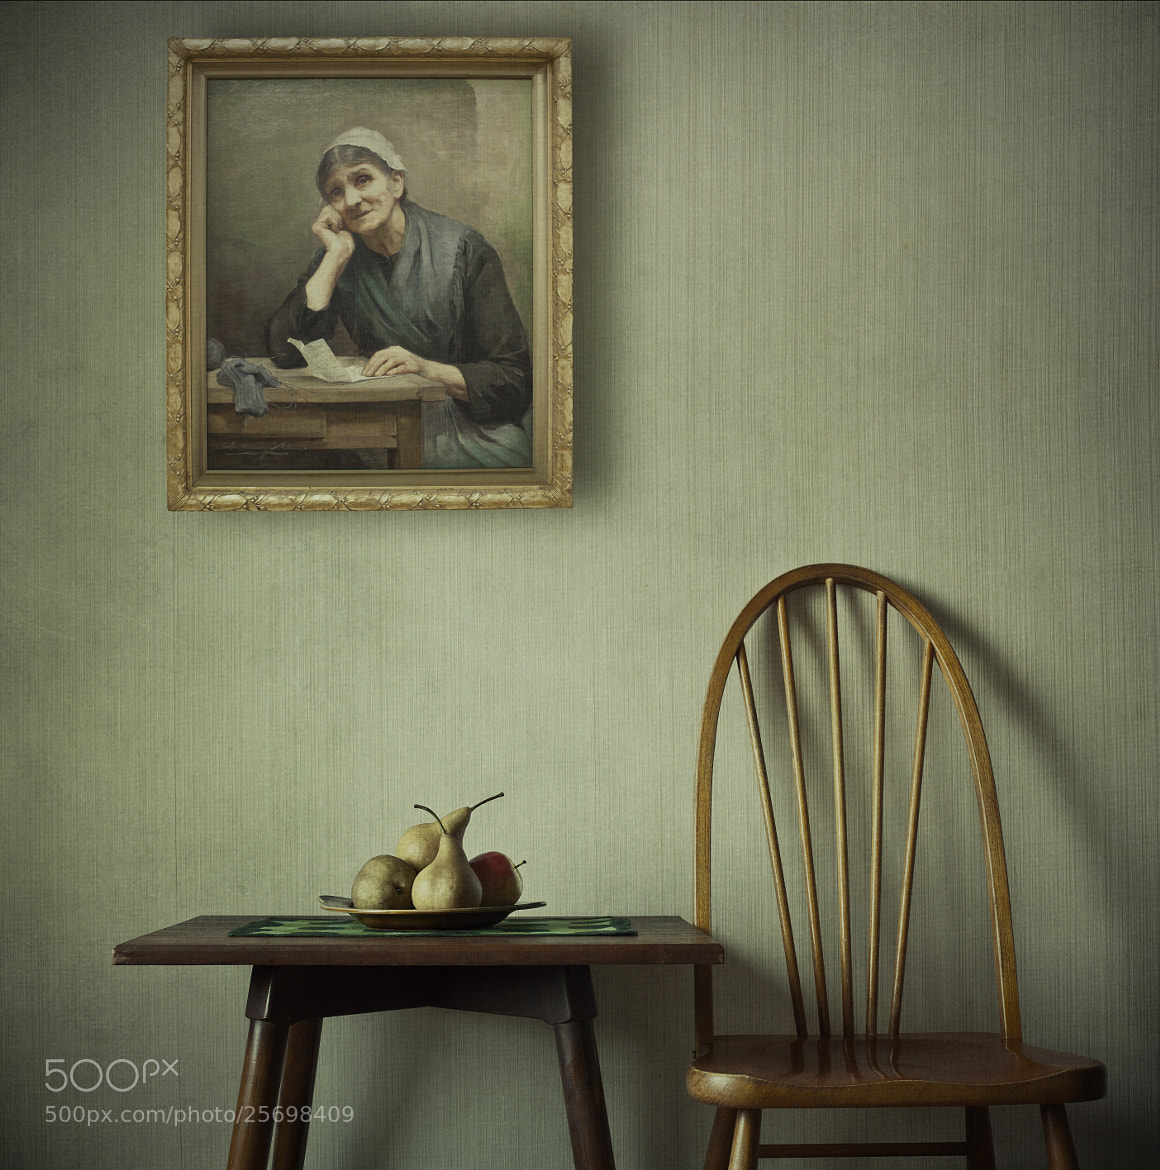 Photograph Table For One by Luis Ferreiro on 500px